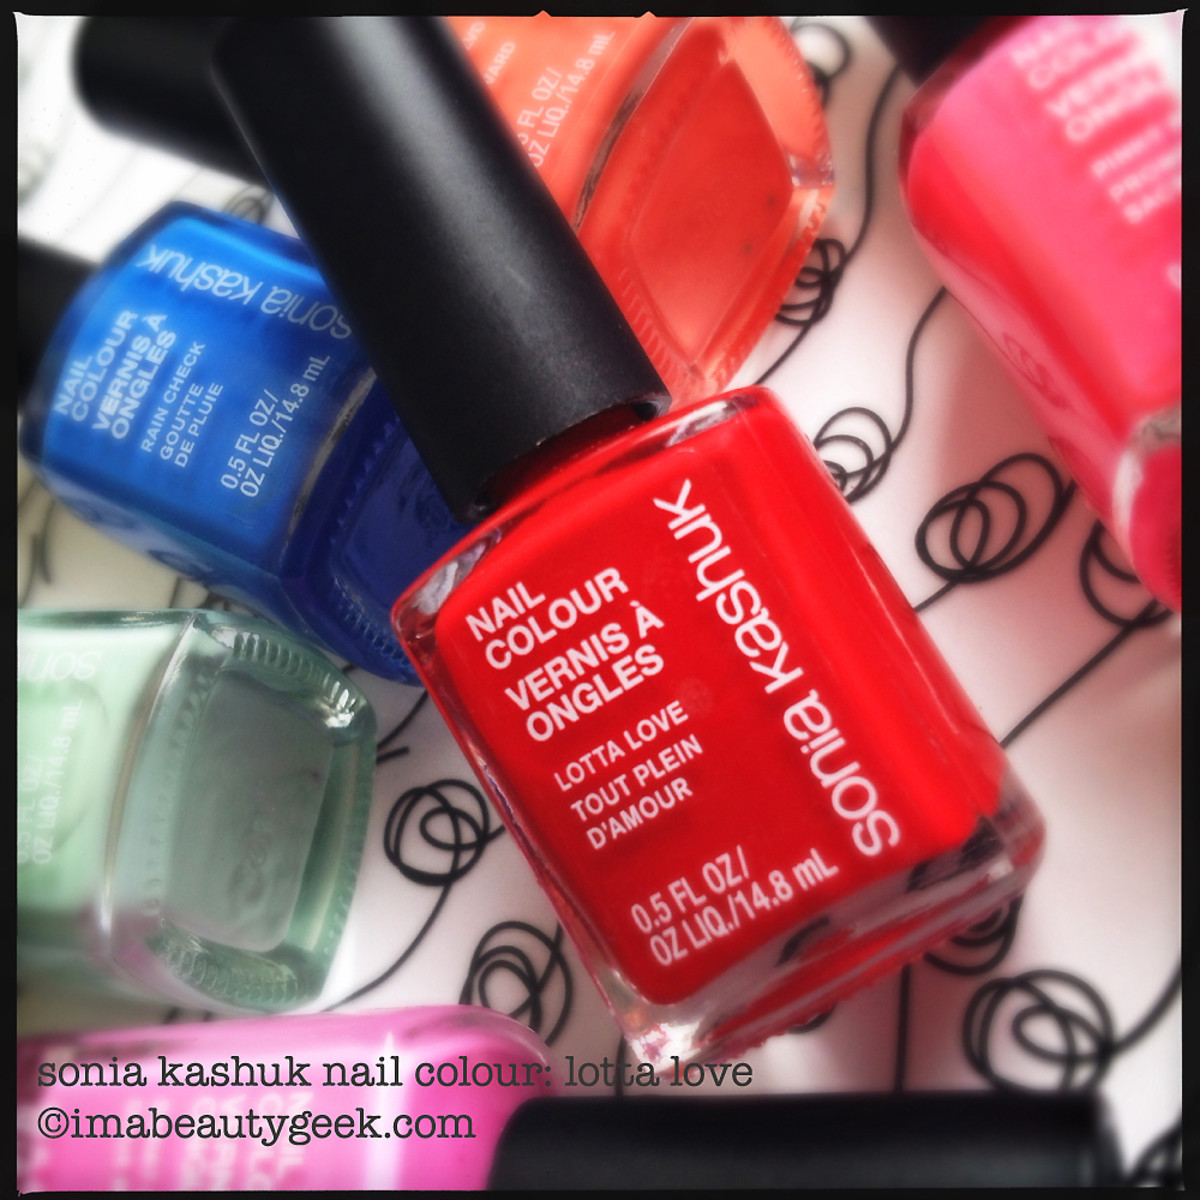 Sonia Kashuk Lotta Love nail polish